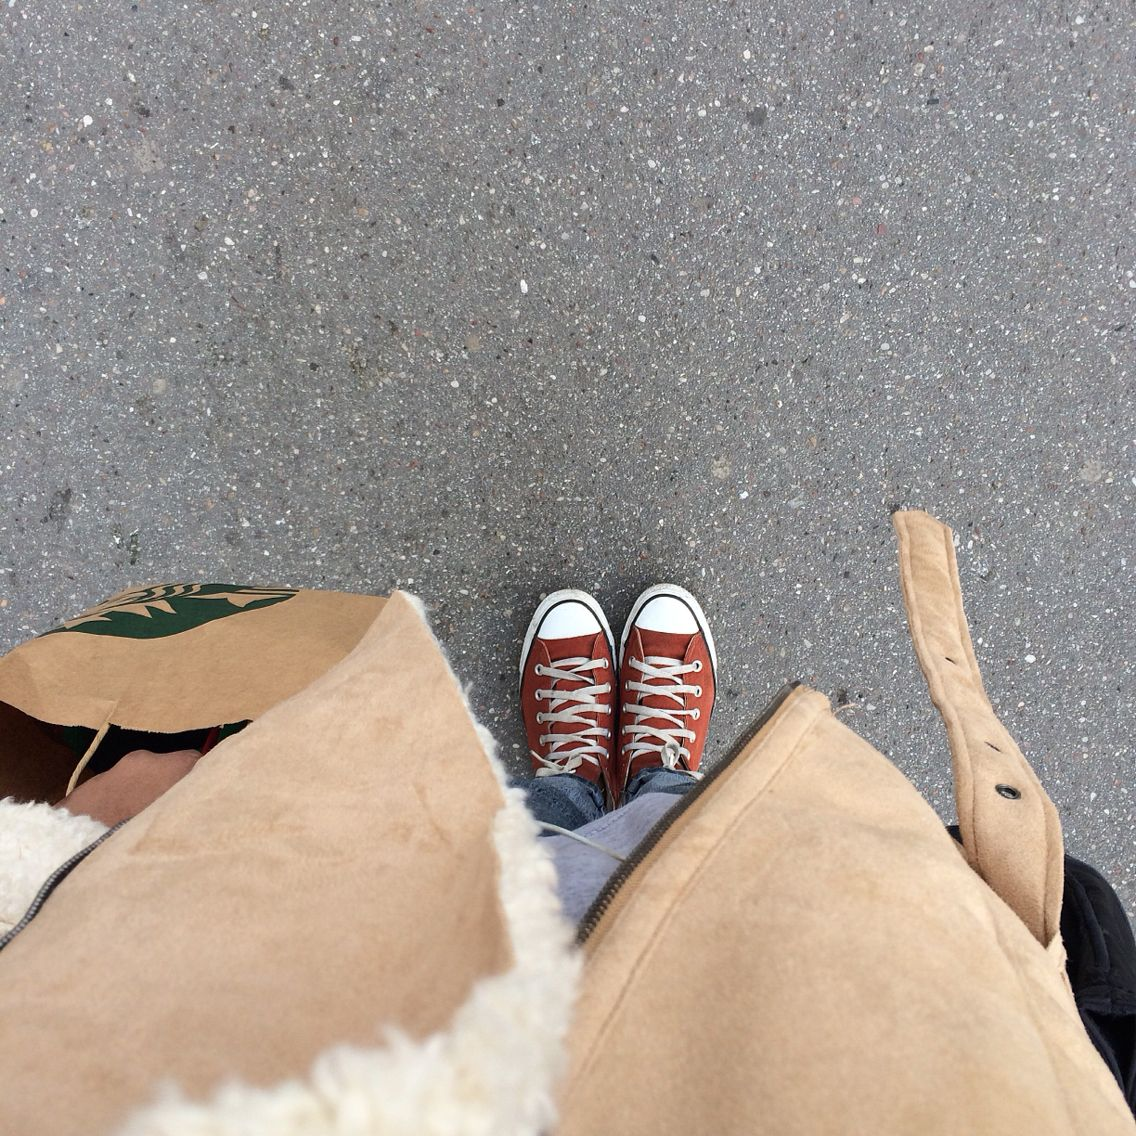 Out with Taylors  #converse #chucktaylors #sneakers